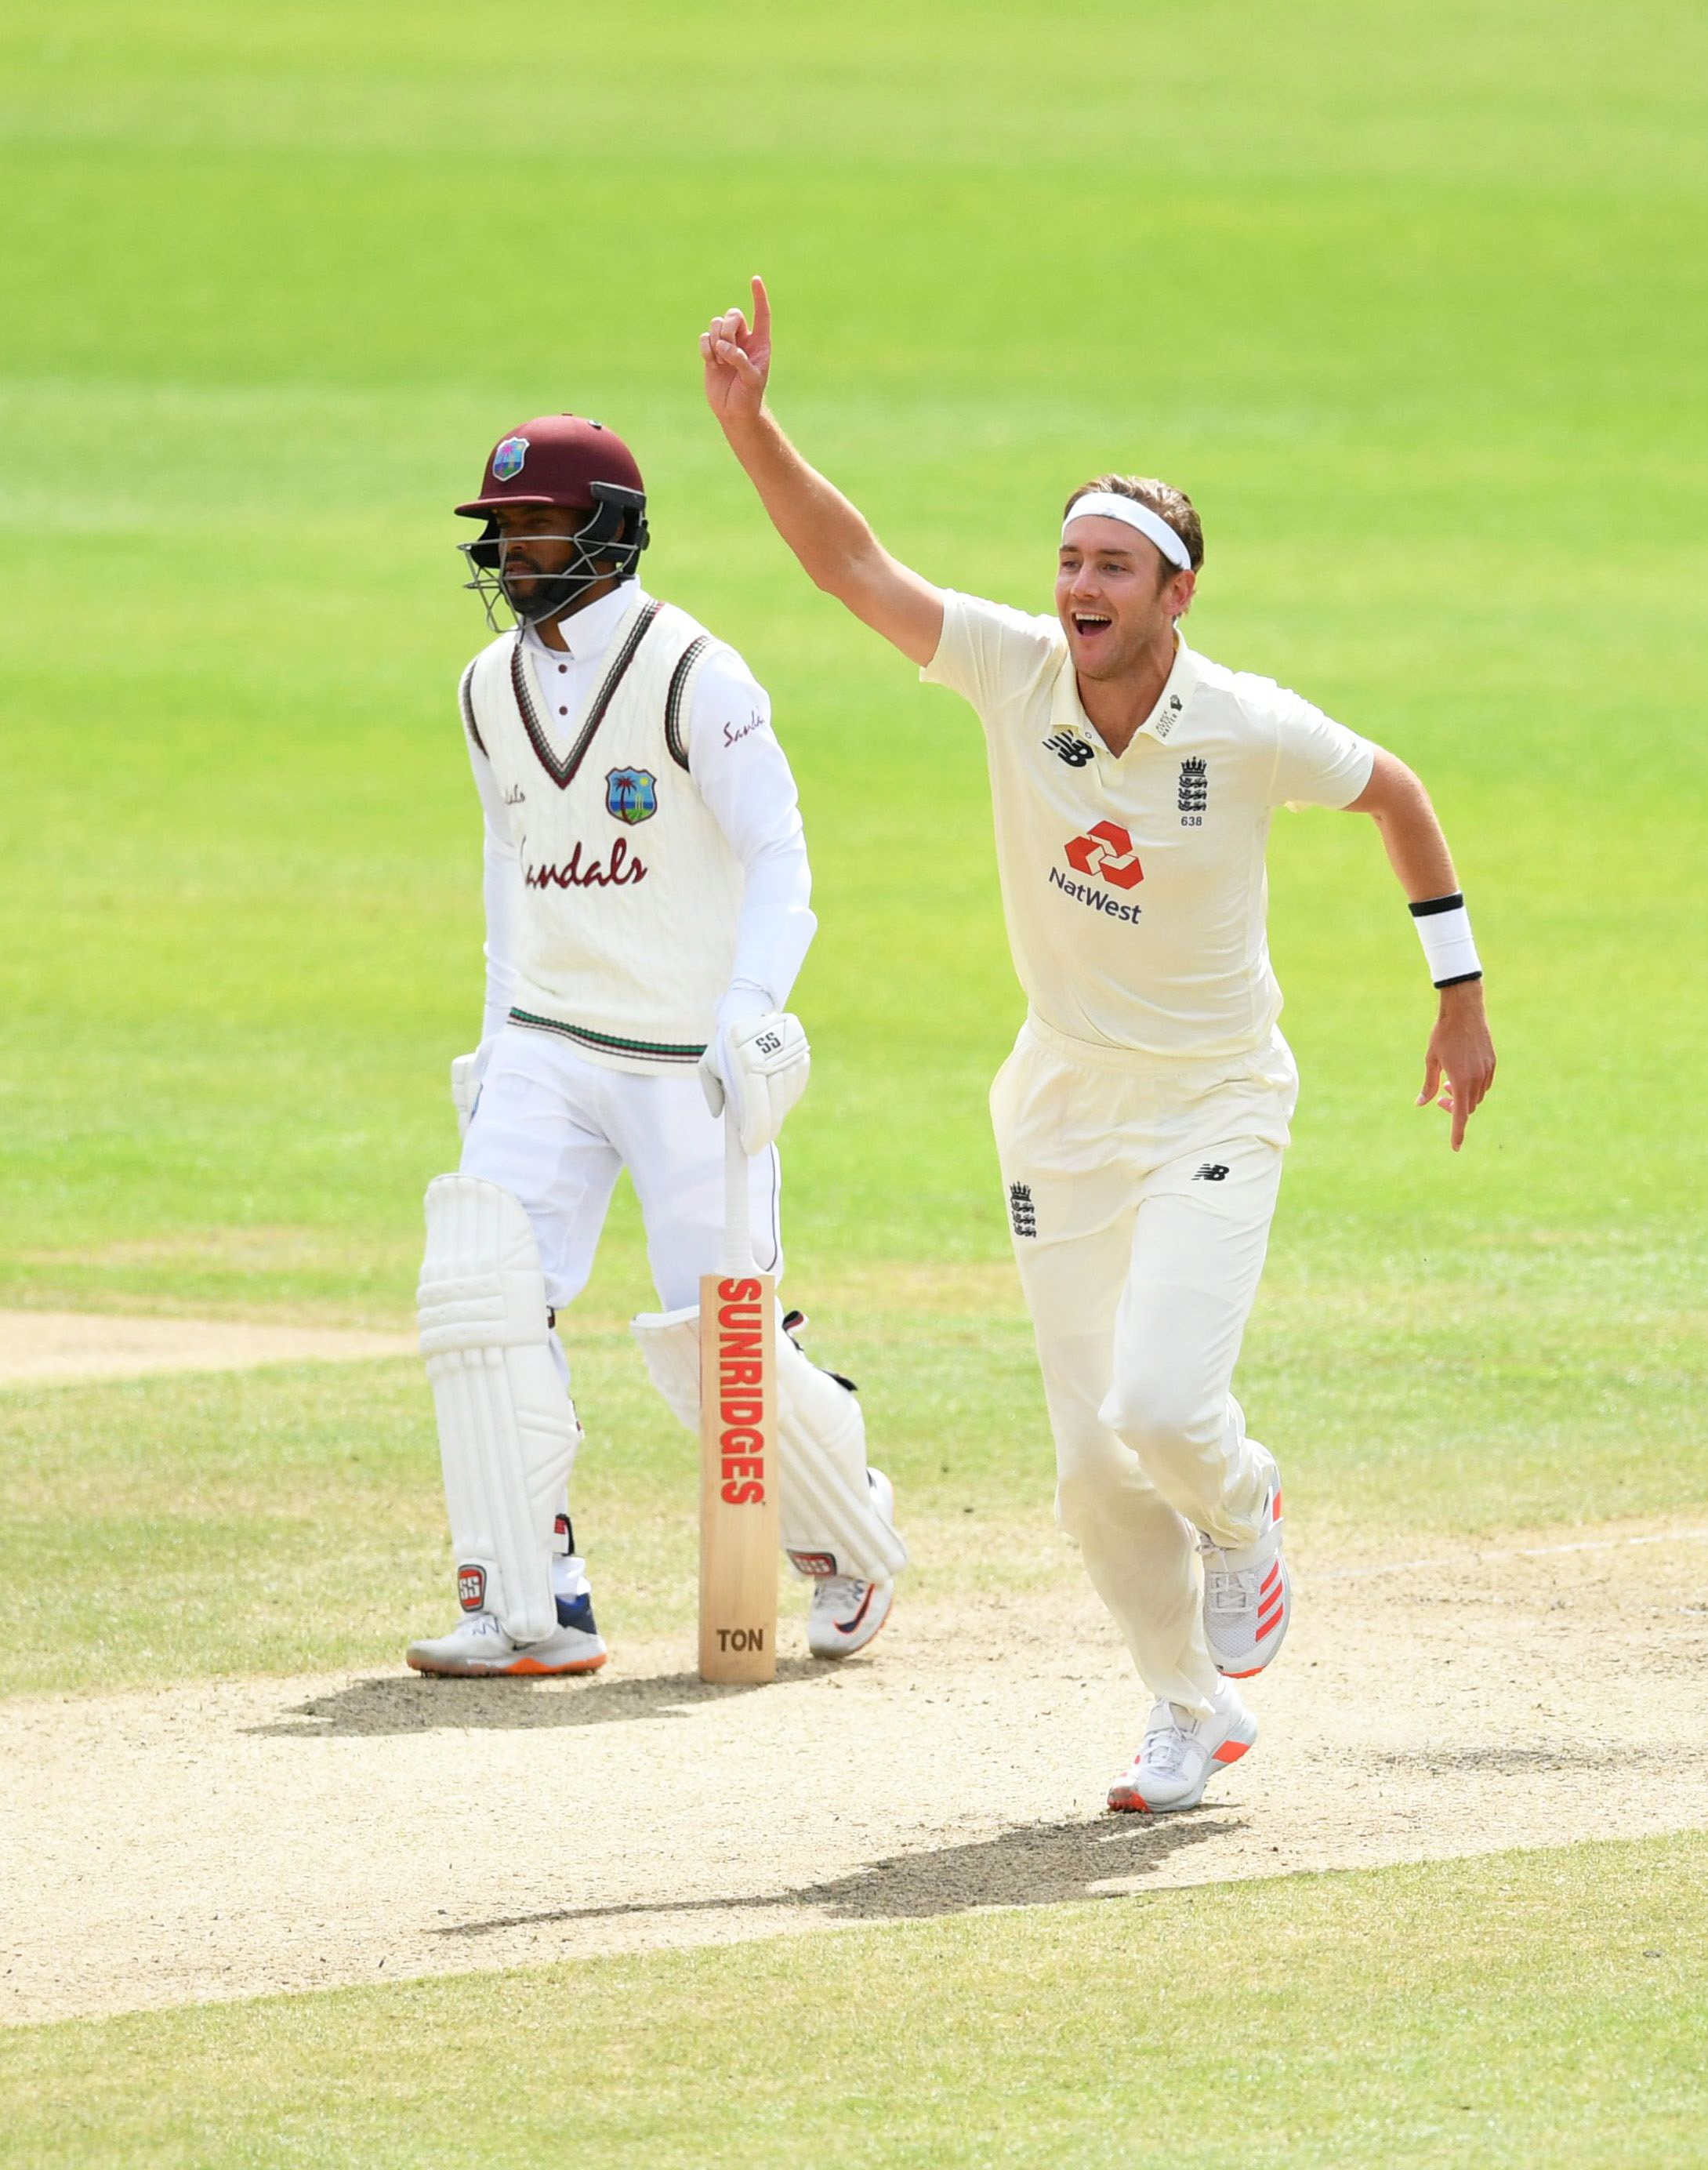 Broad celebrates his 500th Test wicket // Getty